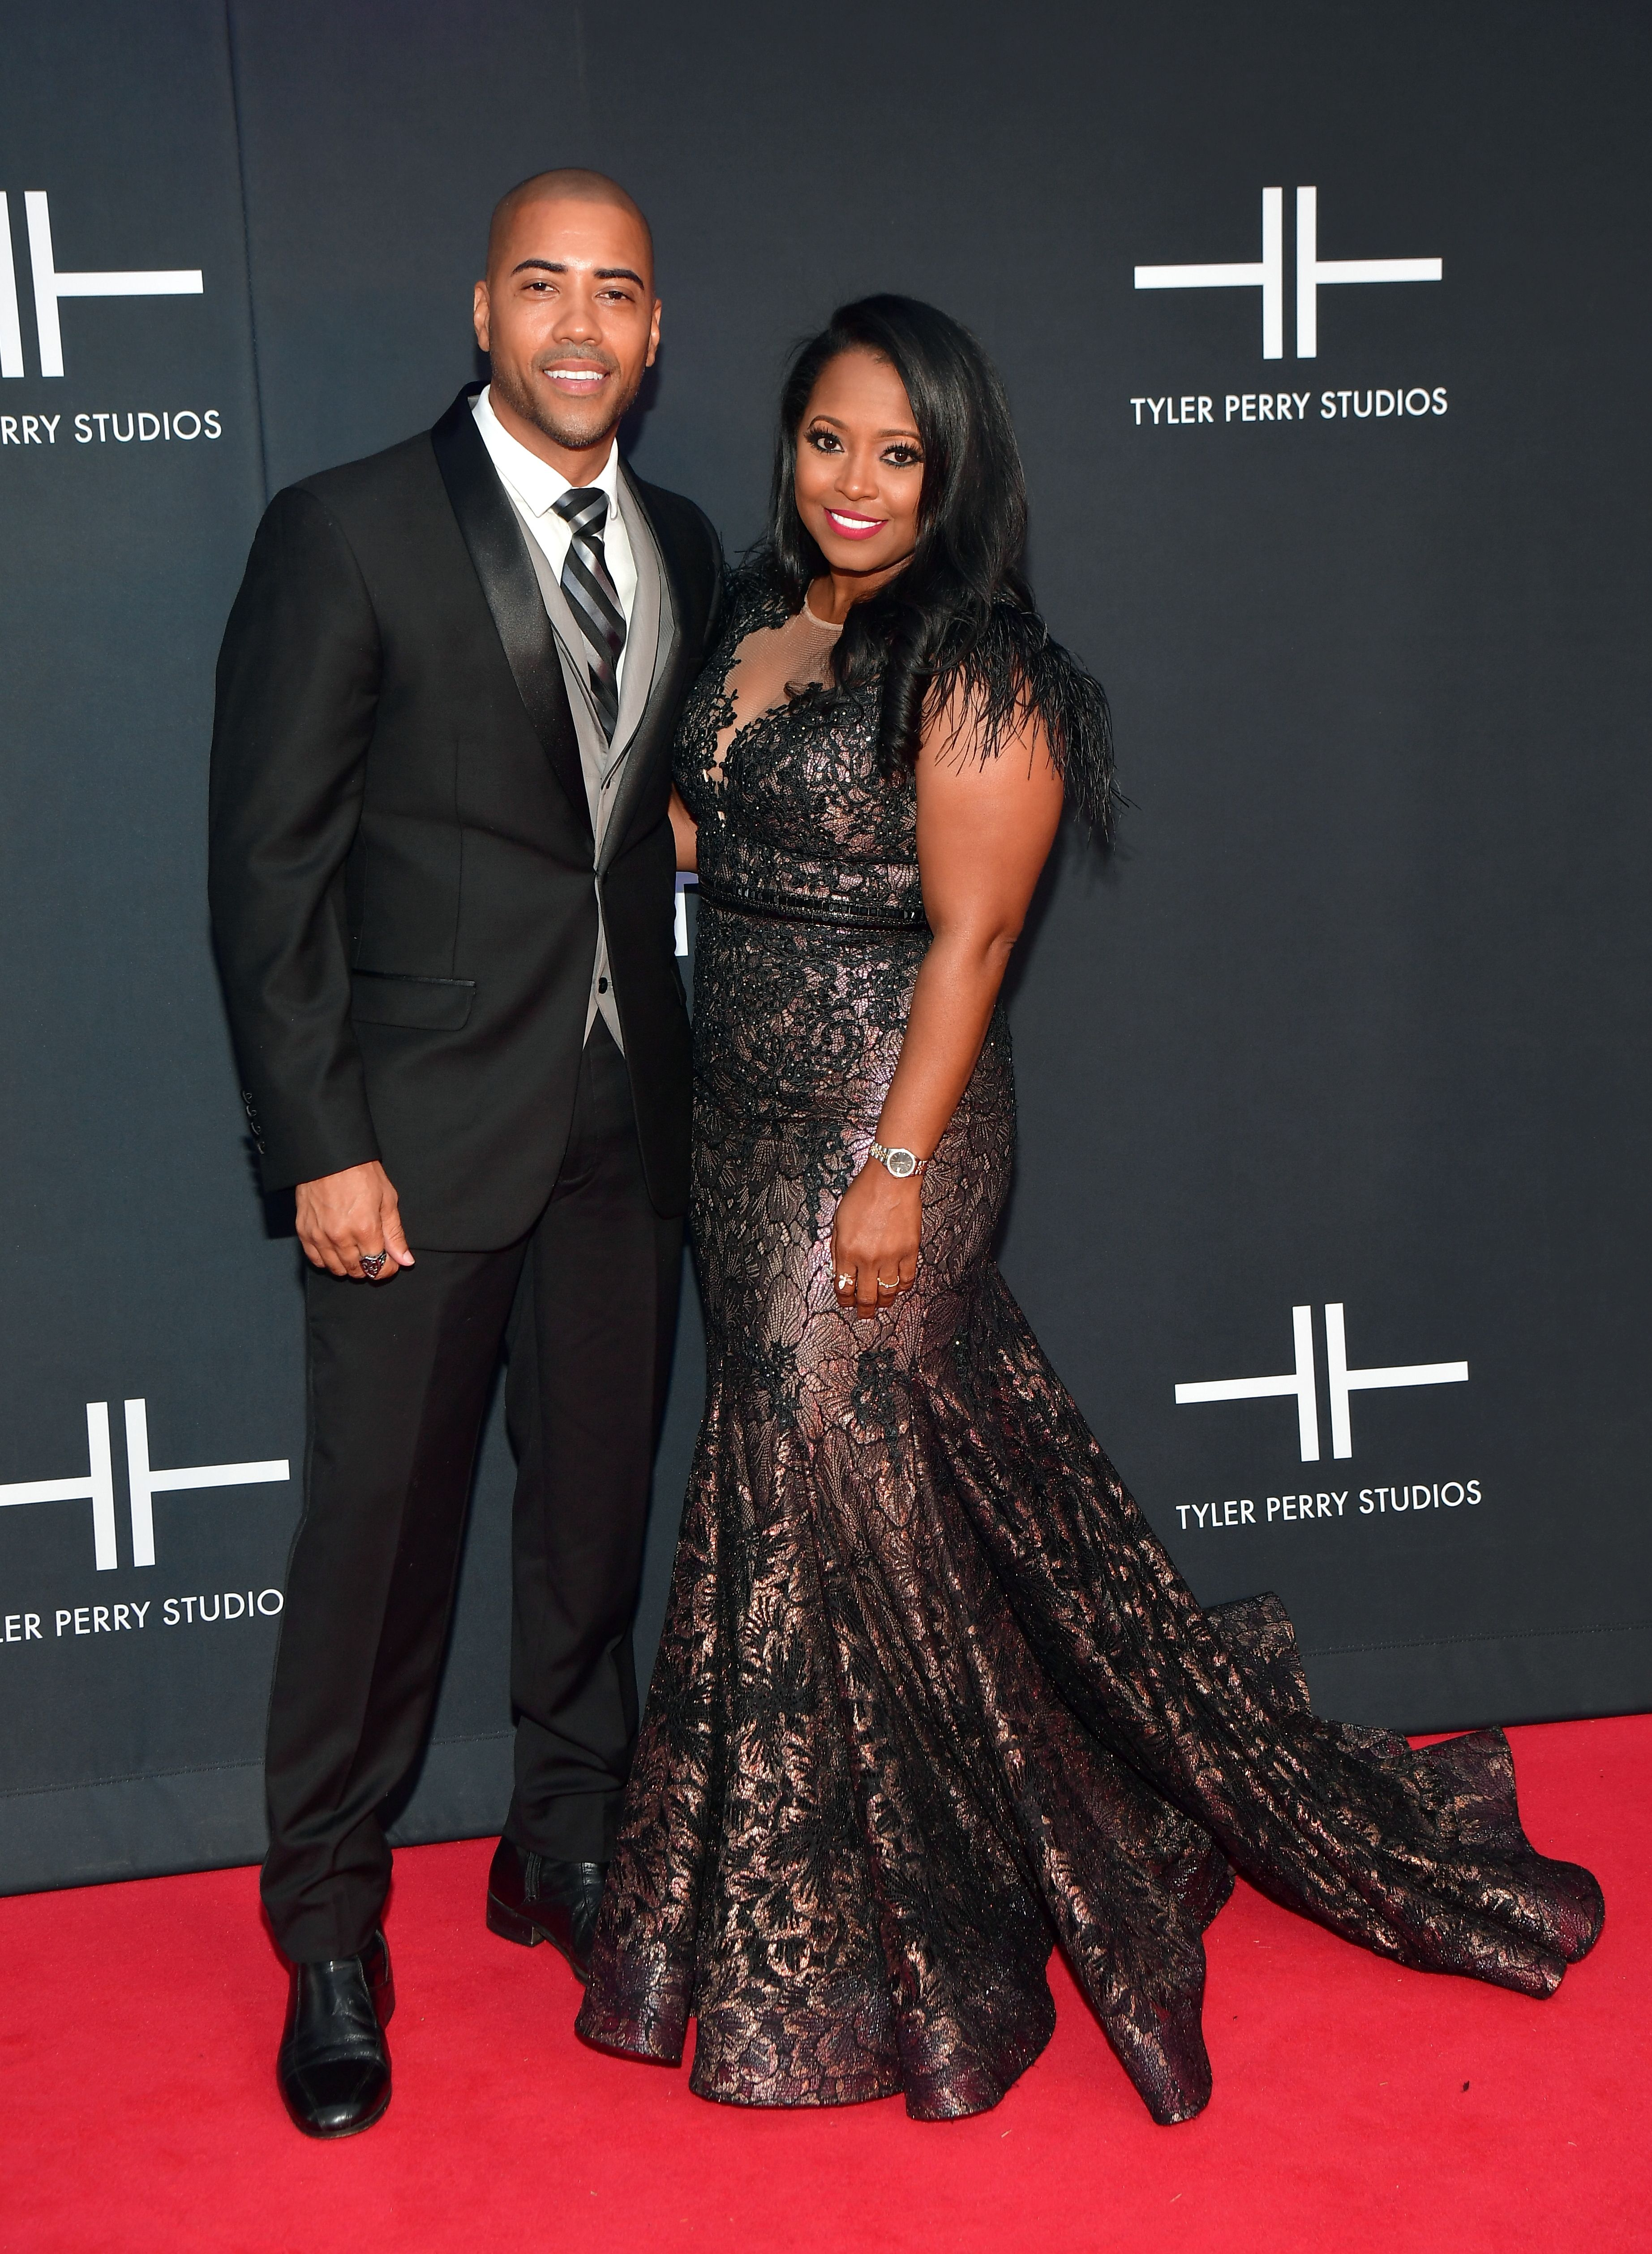 Brad James and Keshia Knight Pulliam during Tyler Perry Studios' Grand Opening Gala - Arrivals at Tyler Perry Studios on October 5, 2019 in Atlanta, Georgia. | Source: Getty Images